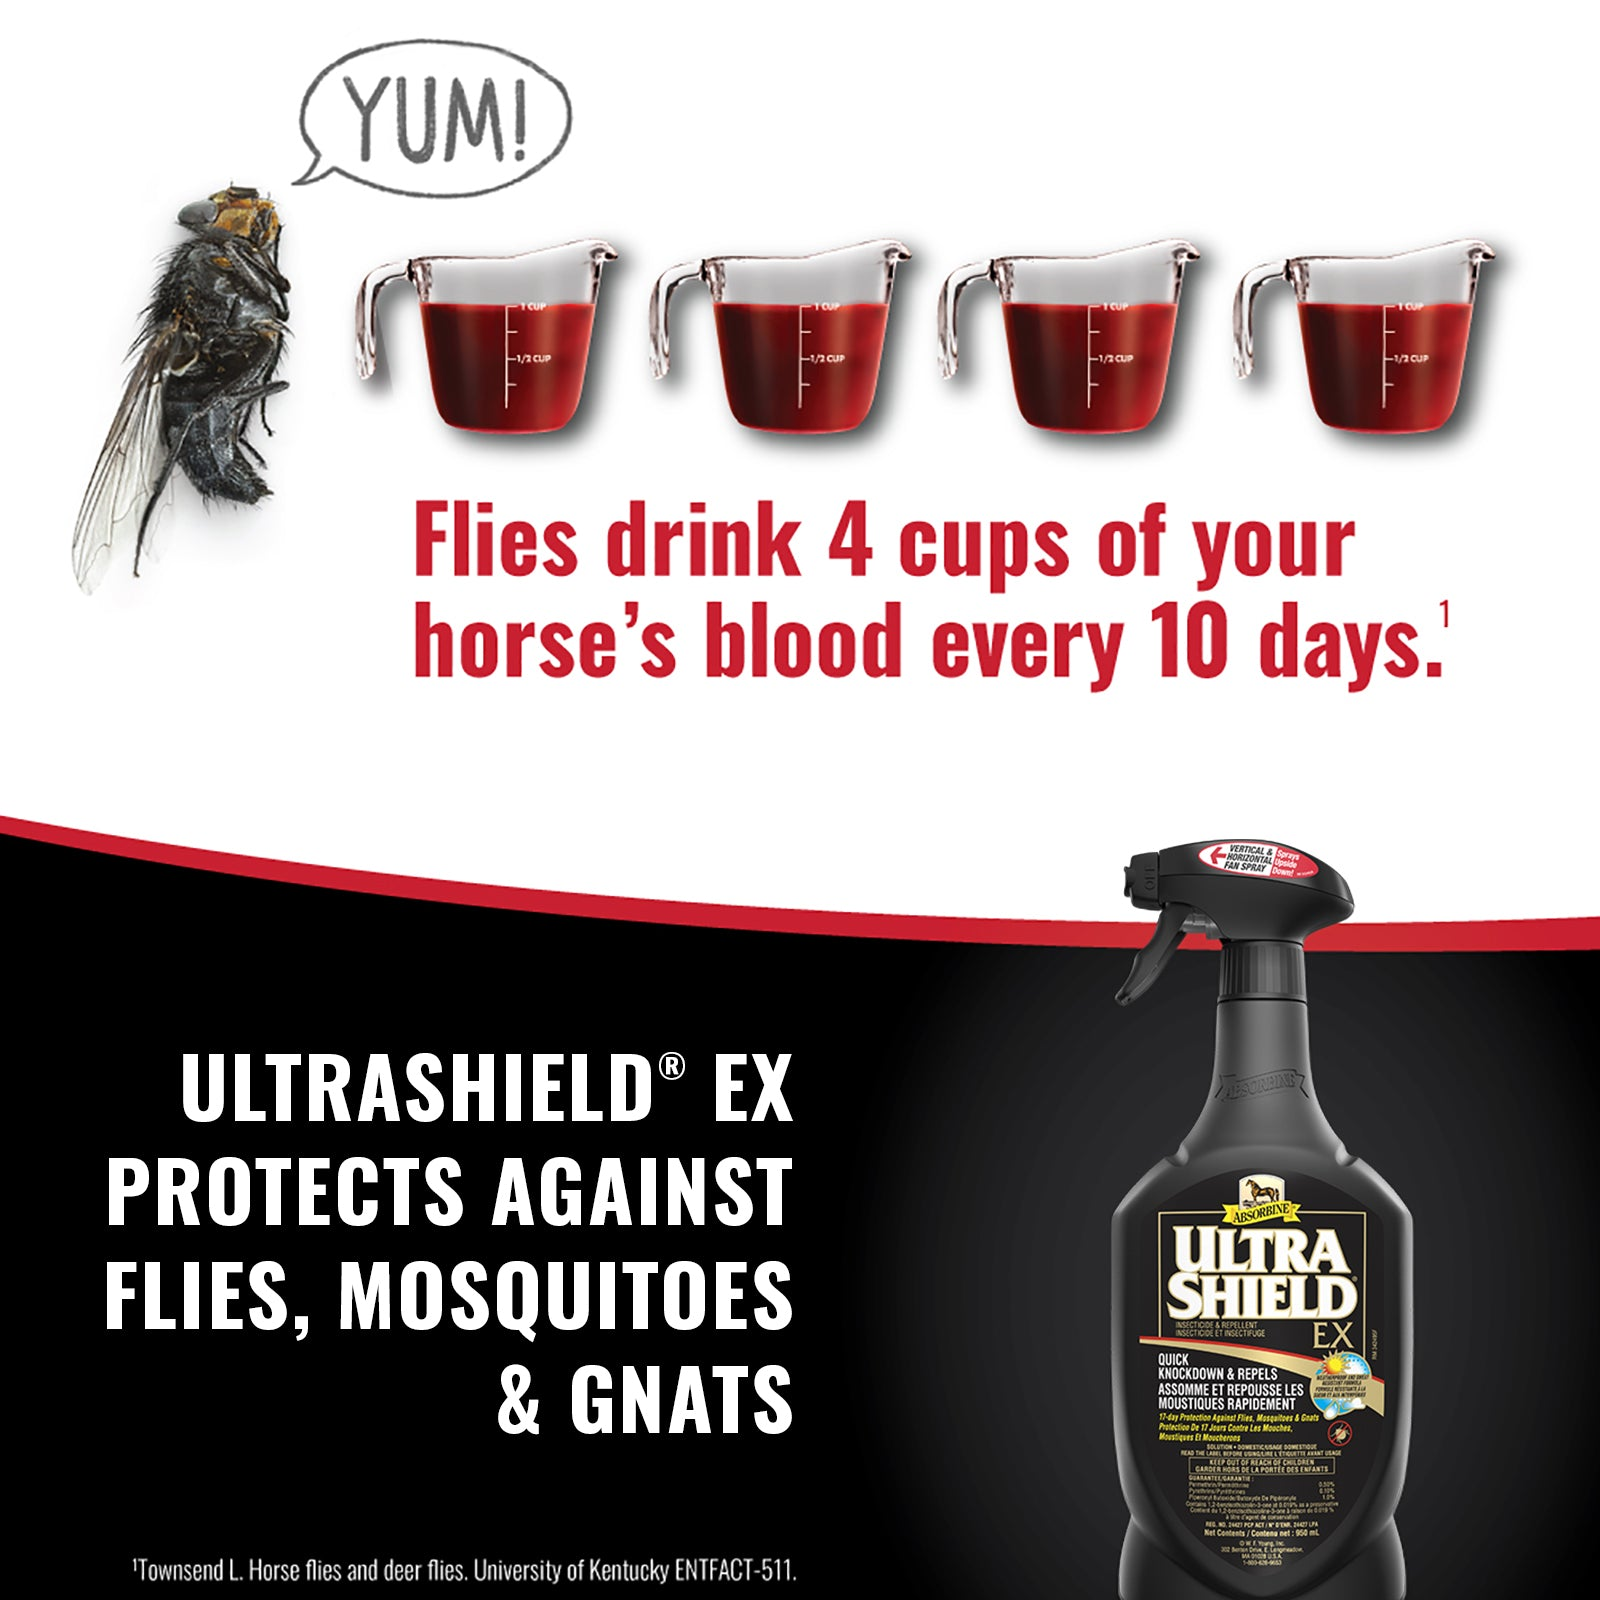 UltraShield® EX Insecticide & Repellent